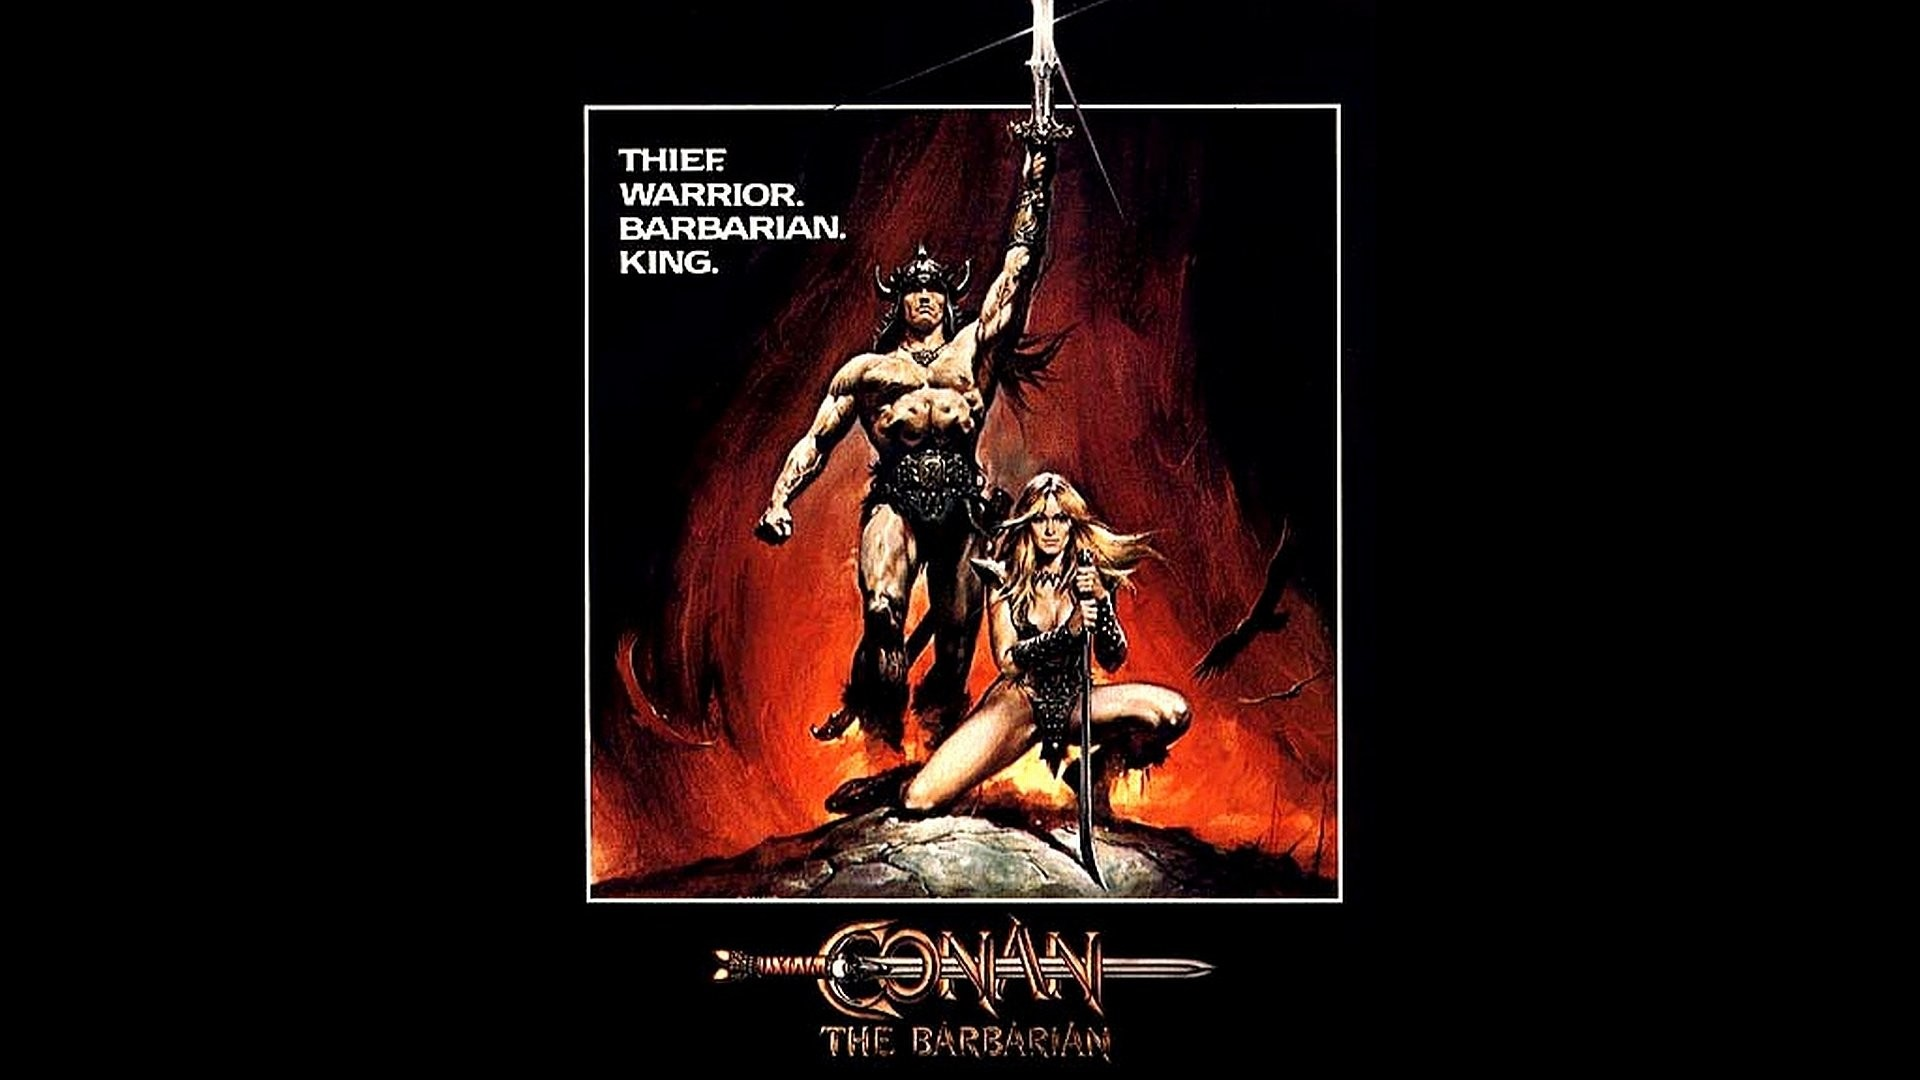 Conan The Barbarian HD Wallpapers Backgrounds